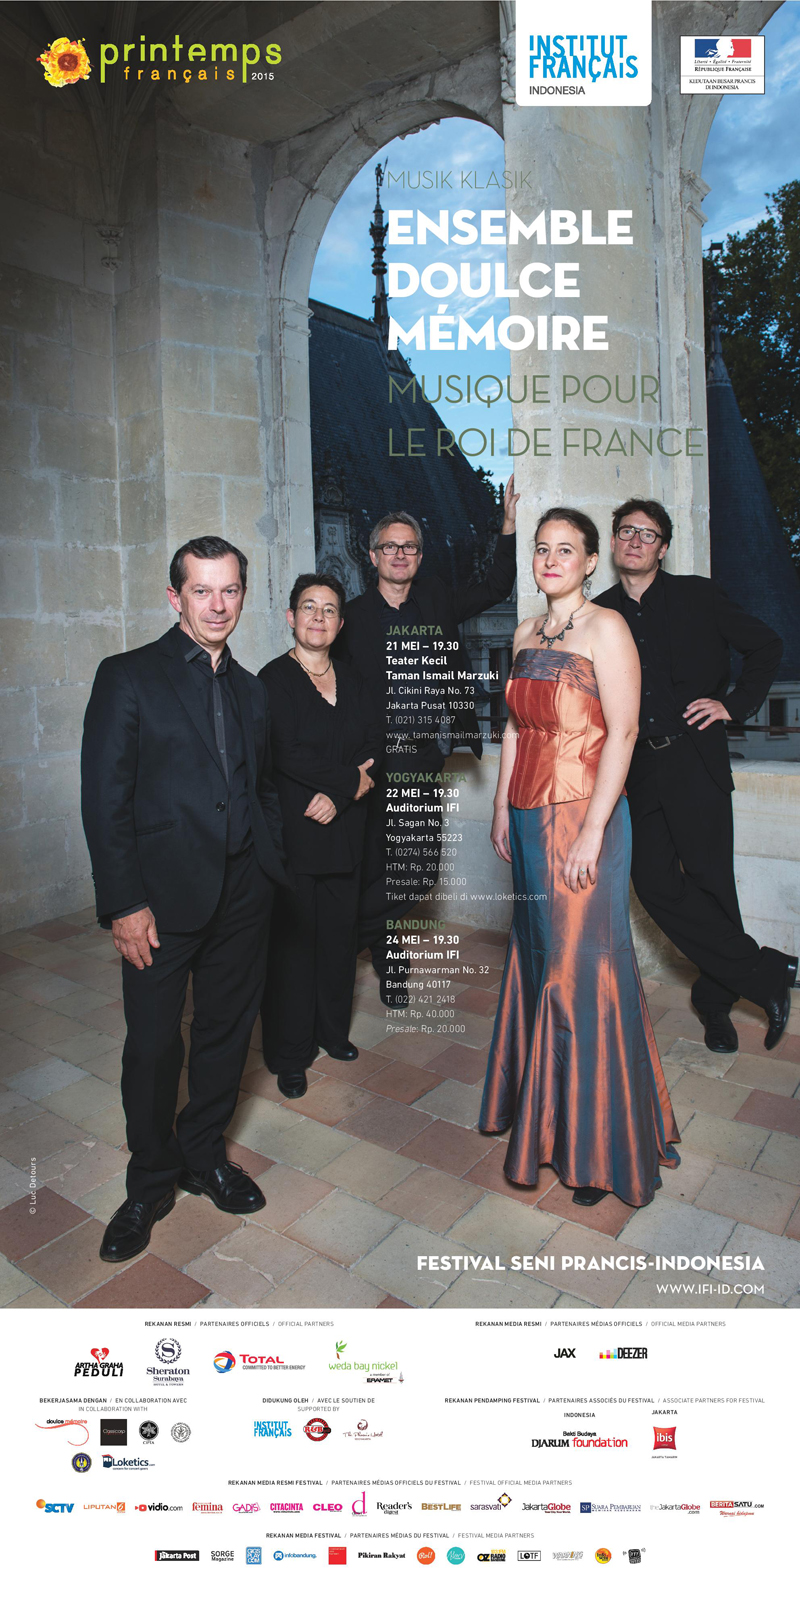 05 FA-PF2015_POSTER_ENSEMBLE DOULCE  MEMOIRE-PREVIEW-page-001 edit